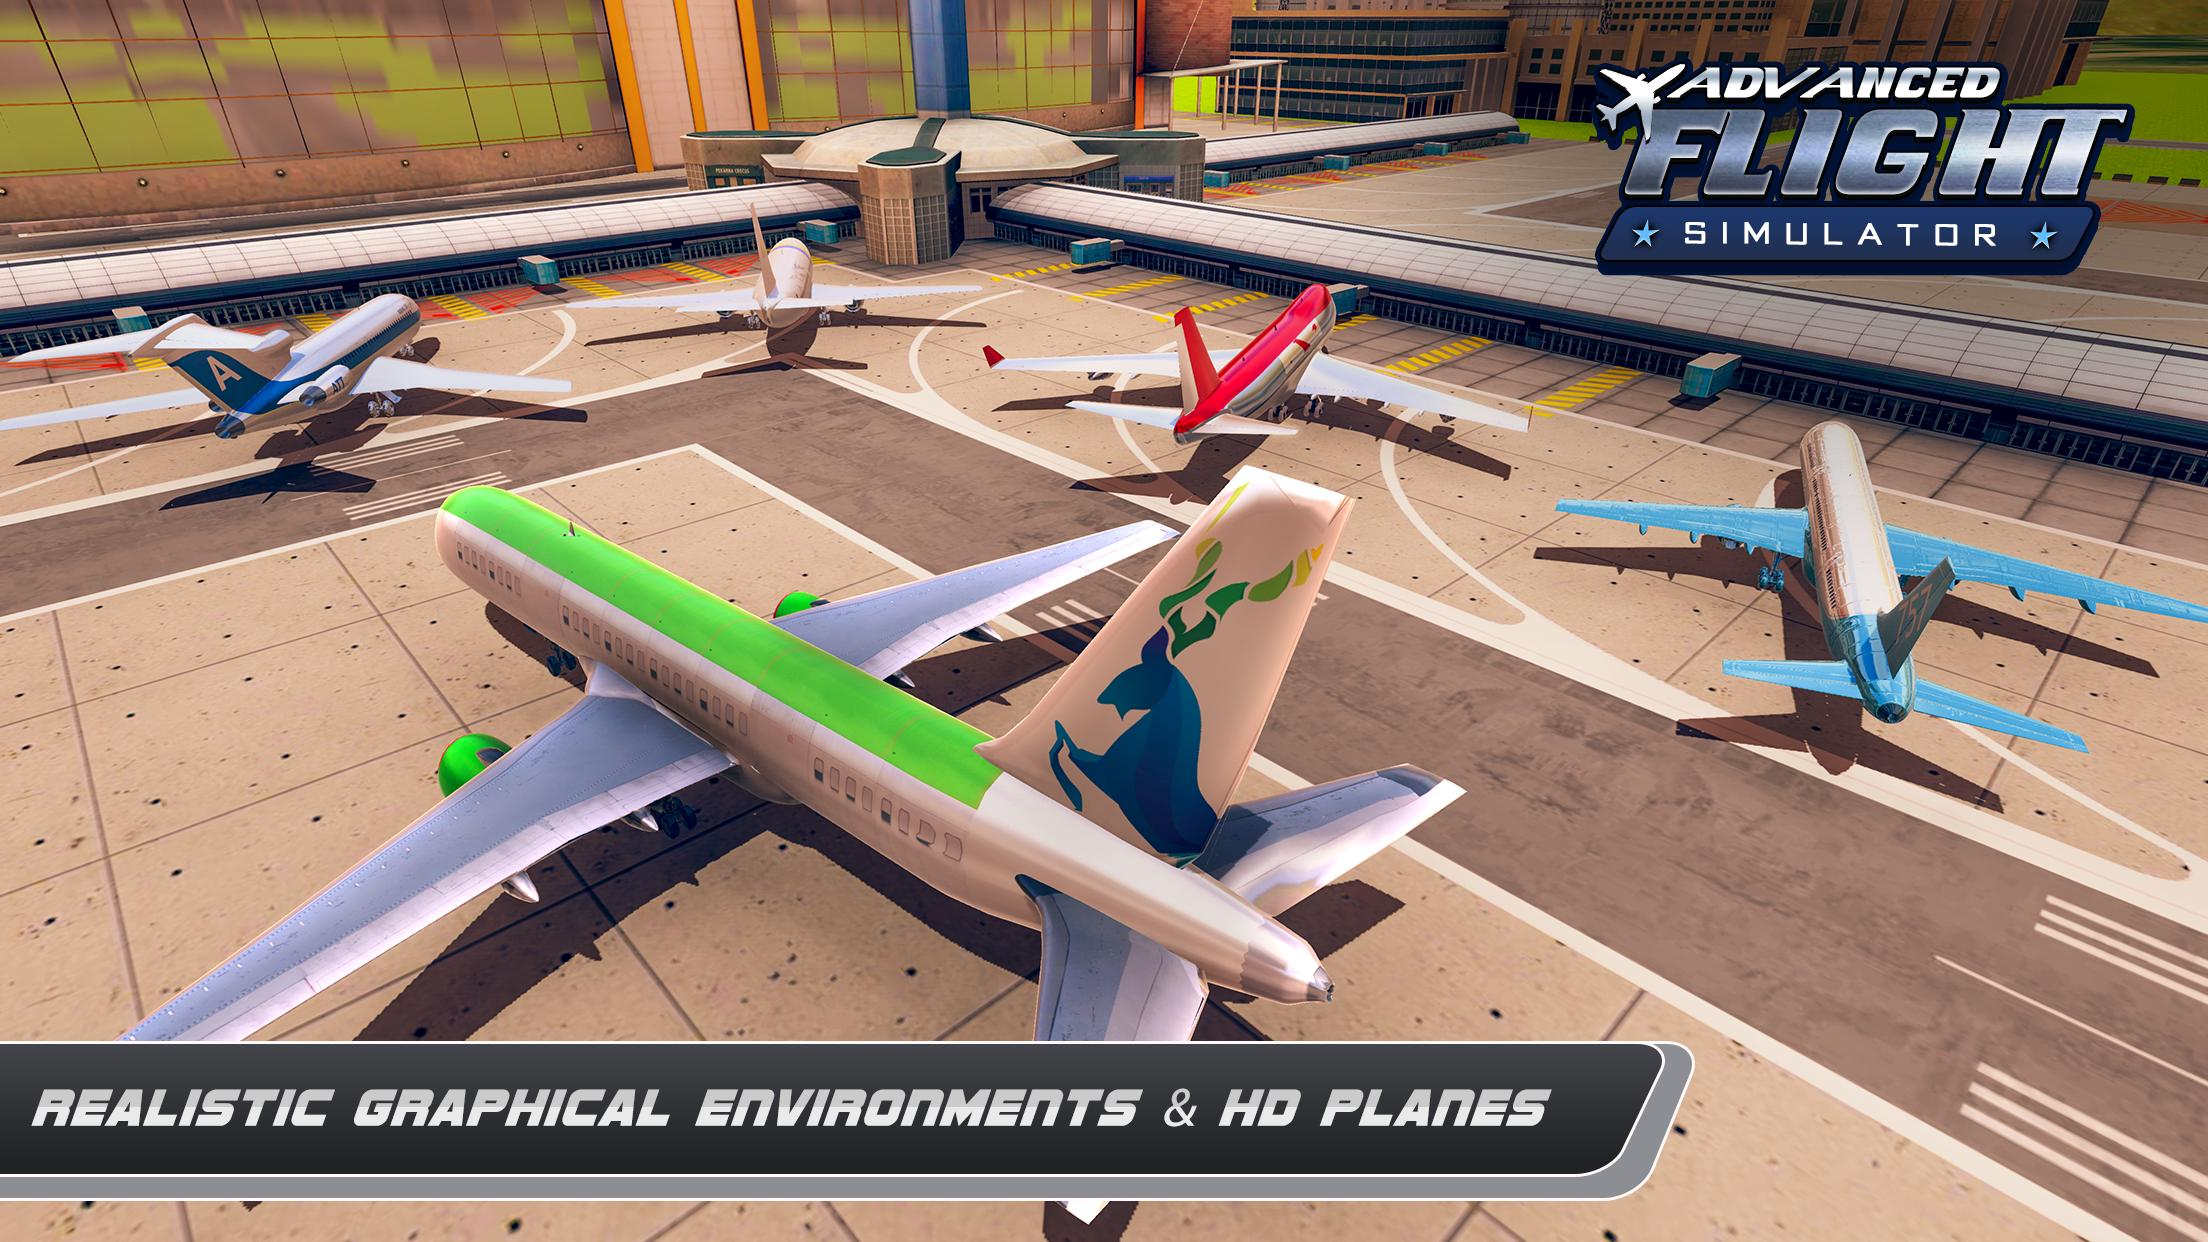 Airplane Real Flight Simulator 2020 Plane Games 5.4 Screenshot 5